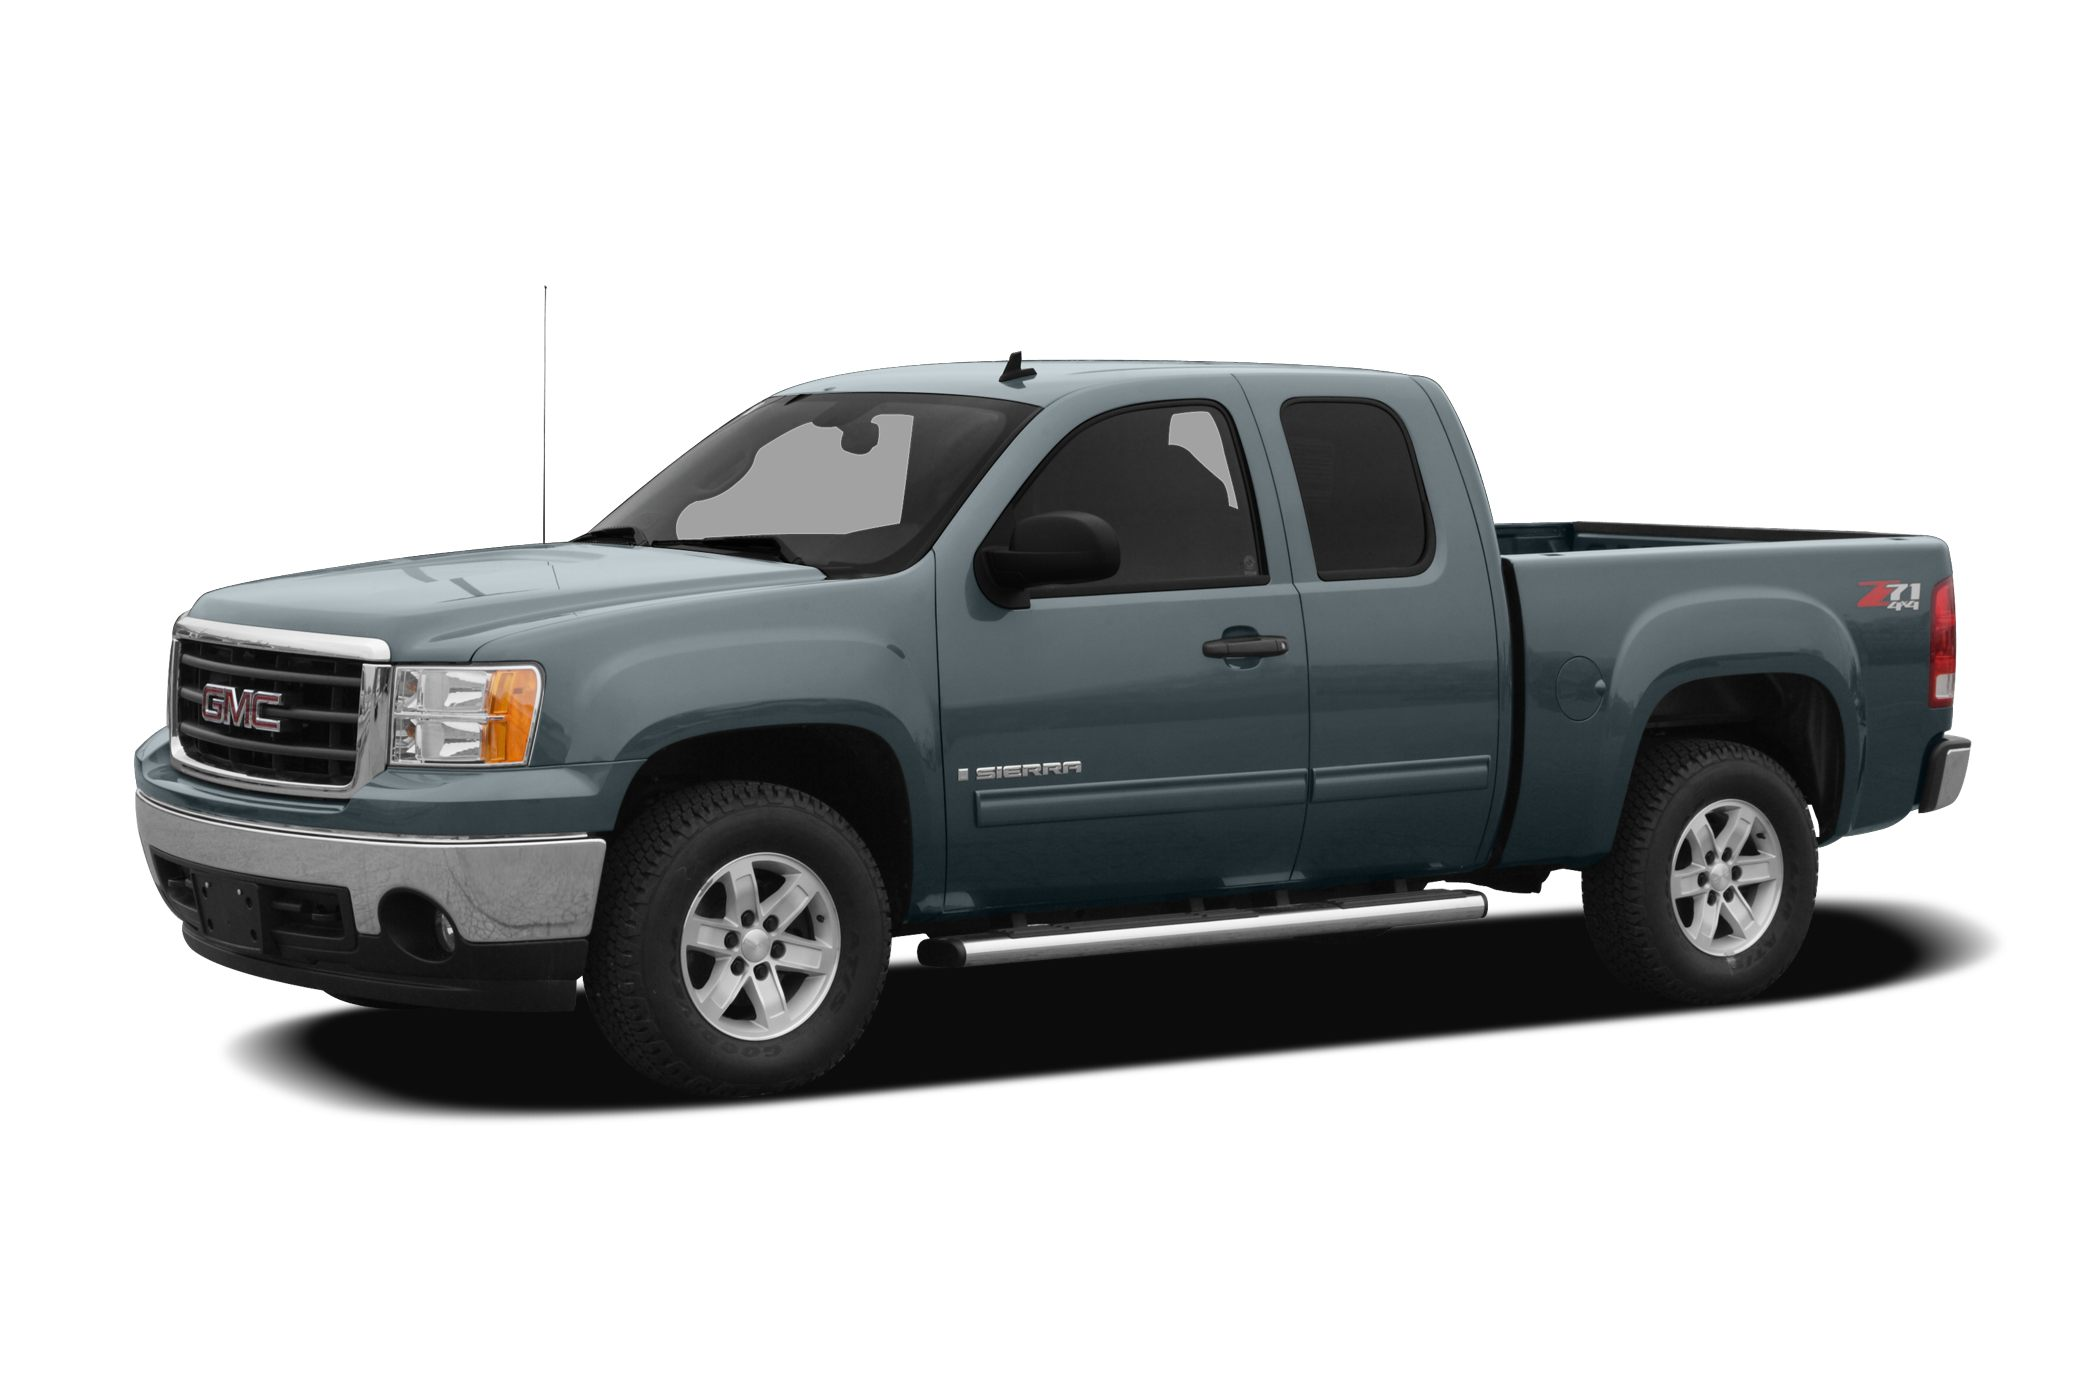 2009 GMC Sierra 1500 SLE 2 YEARS MAINTENANCE INCLUDED WITH EVERY VEHICLE PURCHASED Why gamble on p